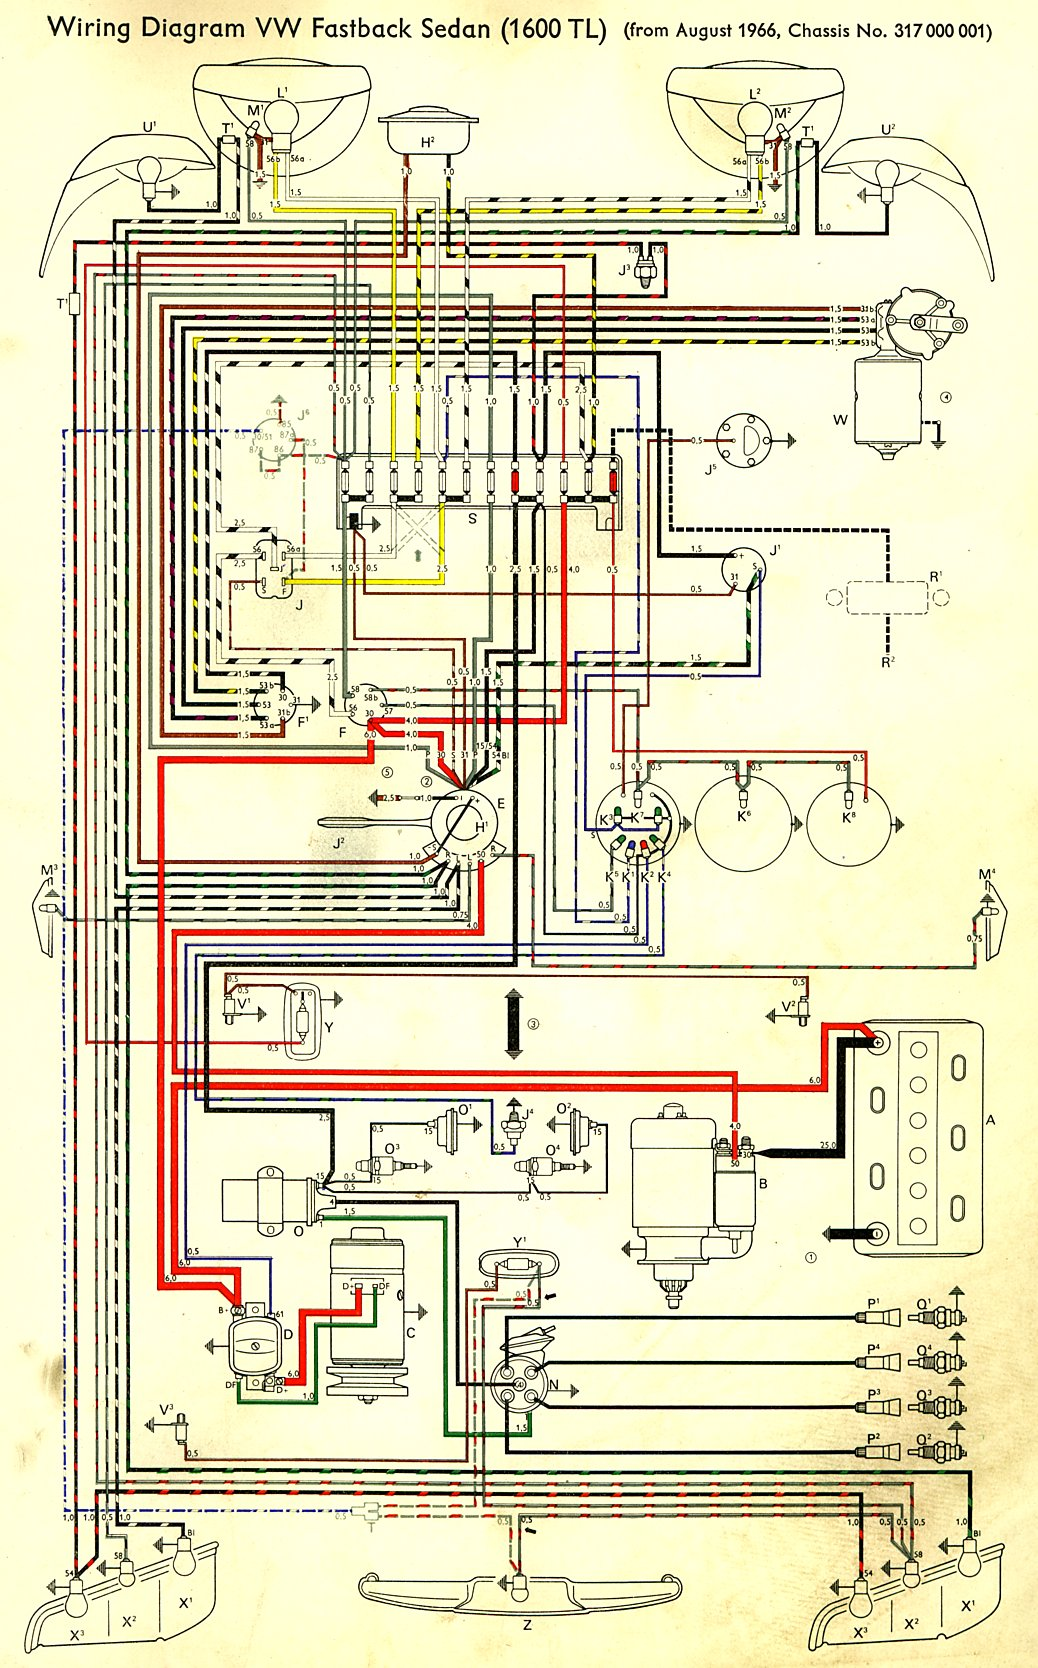 1971 Vw Bus Wiring Harness | Wiring Diagram  Vw Bus Wiring Harness on vw wire harness, vw wiring harness diagram, volkswagen beetle wiring harness, off road wiring harness, vw wiring harness kits, pontiac bonneville wiring harness, motorcycle wiring harness, camper wiring harness, vw engine wiring harness, vw bus alternator wiring, dodge challenger wiring harness, vw bus ignition wiring, vw thing wiring harness, porsche wiring harness, kia sportage wiring harness, volkswagen type 3 wiring harness, vw trike wiring harness, vintage vw wiring harness, trailer wiring harness, honda accord wiring harness,